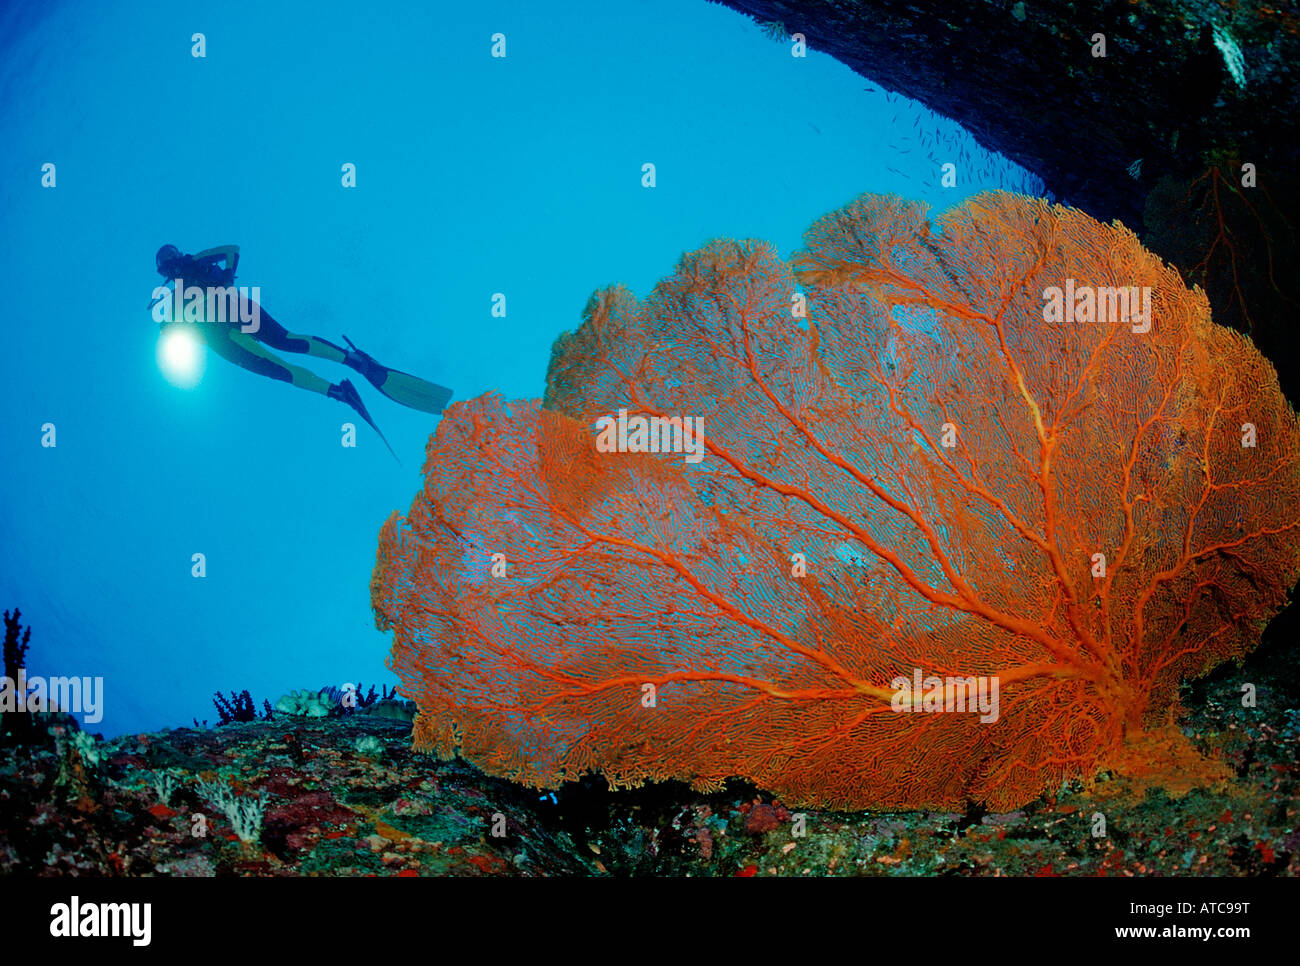 Taucher und Red Sea Fan Similan Inseln-Thailand Stockfoto